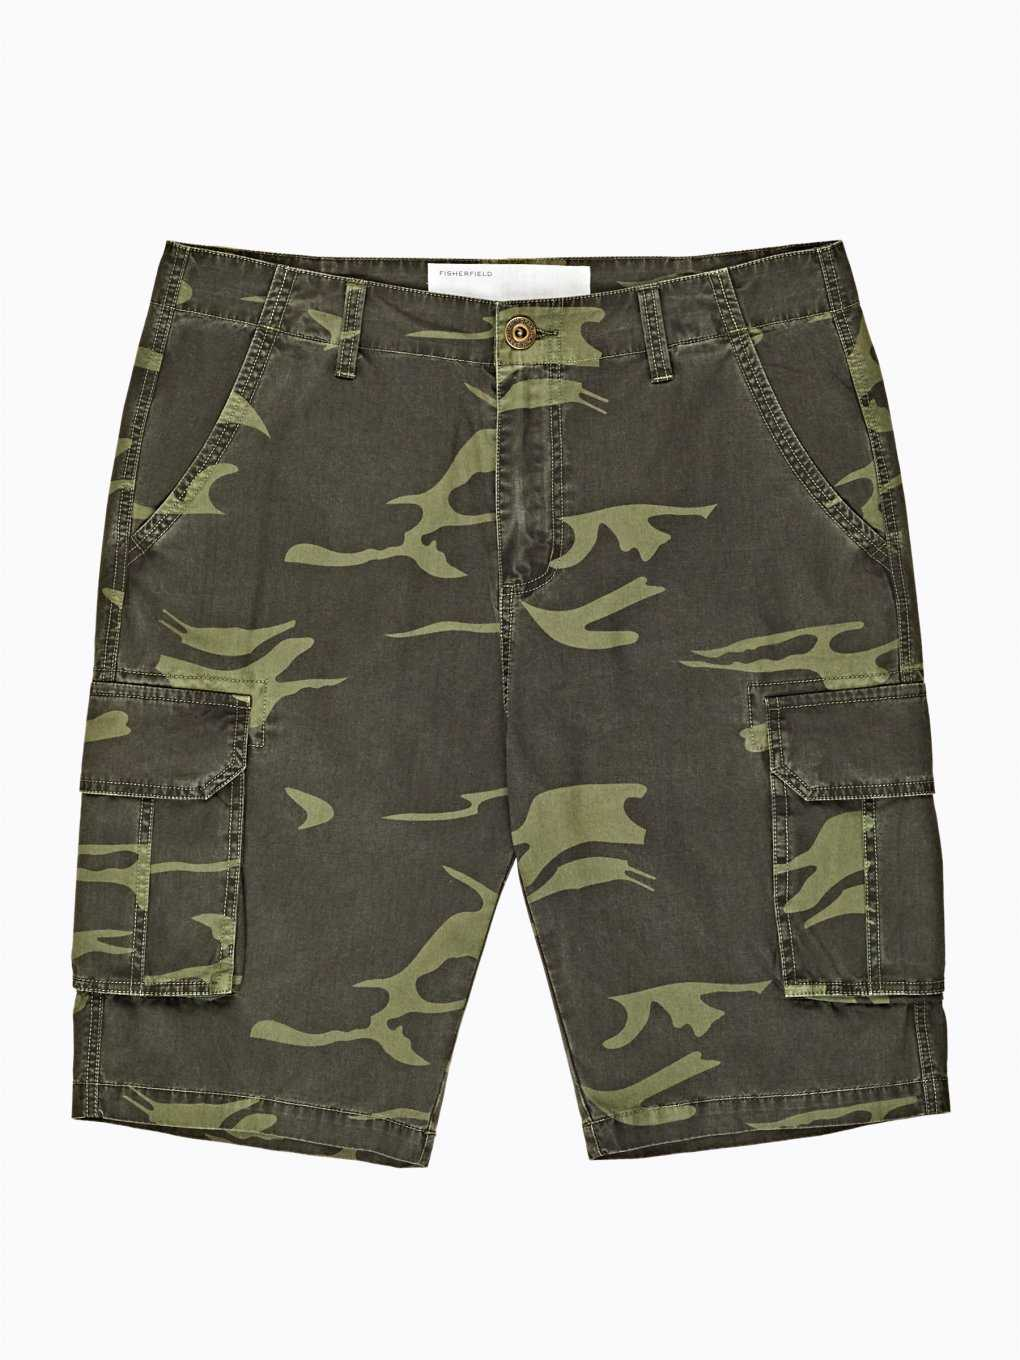 Camo print cotton cargo shorts